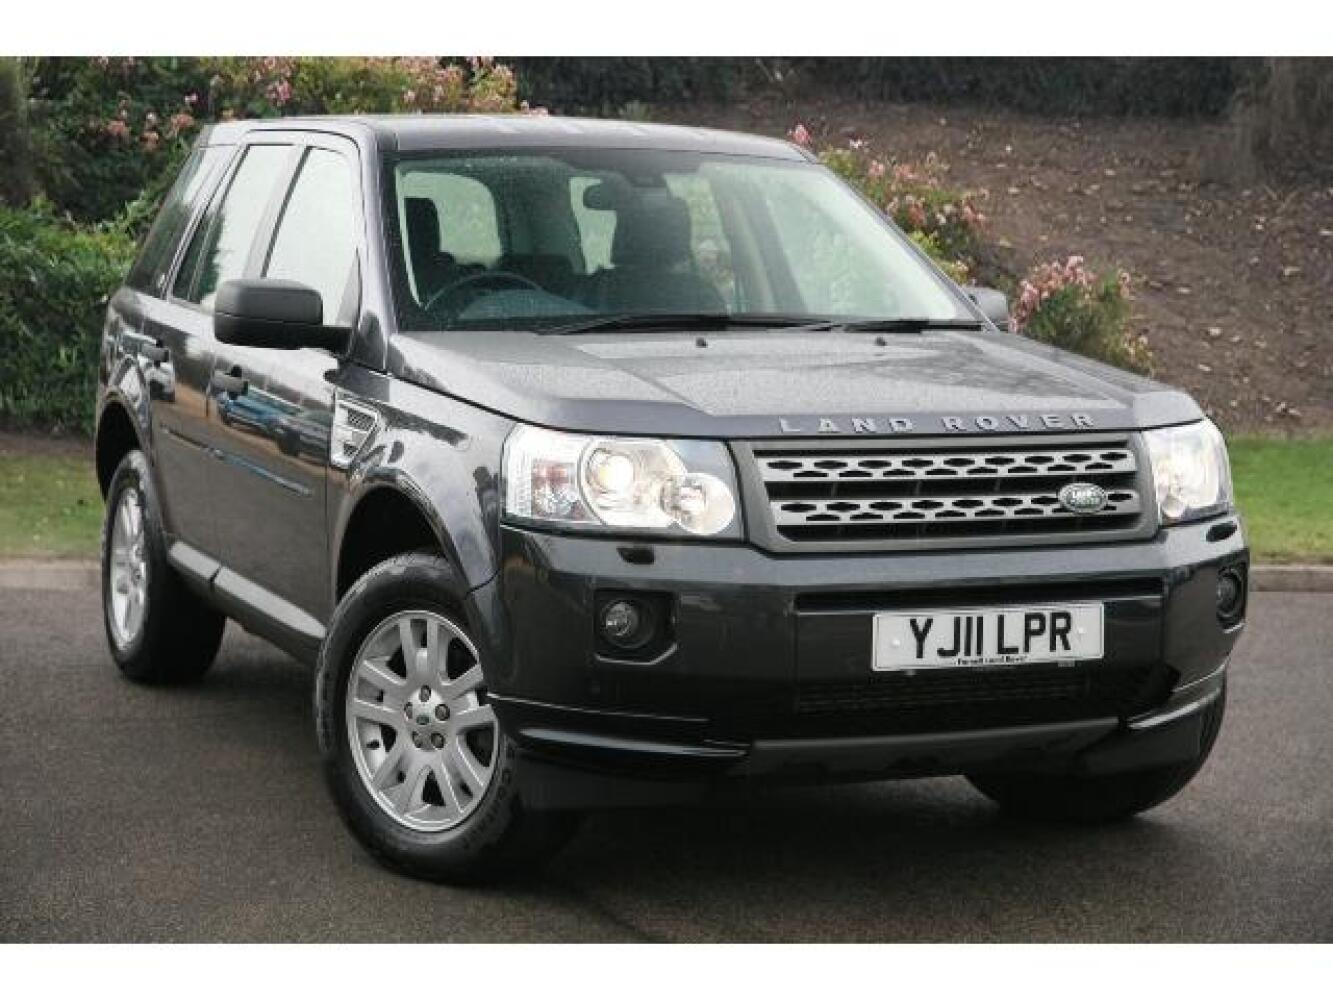 used land rover freelander 2 2 td4 xs 5dr diesel station wagon for sale farnell land rover. Black Bedroom Furniture Sets. Home Design Ideas